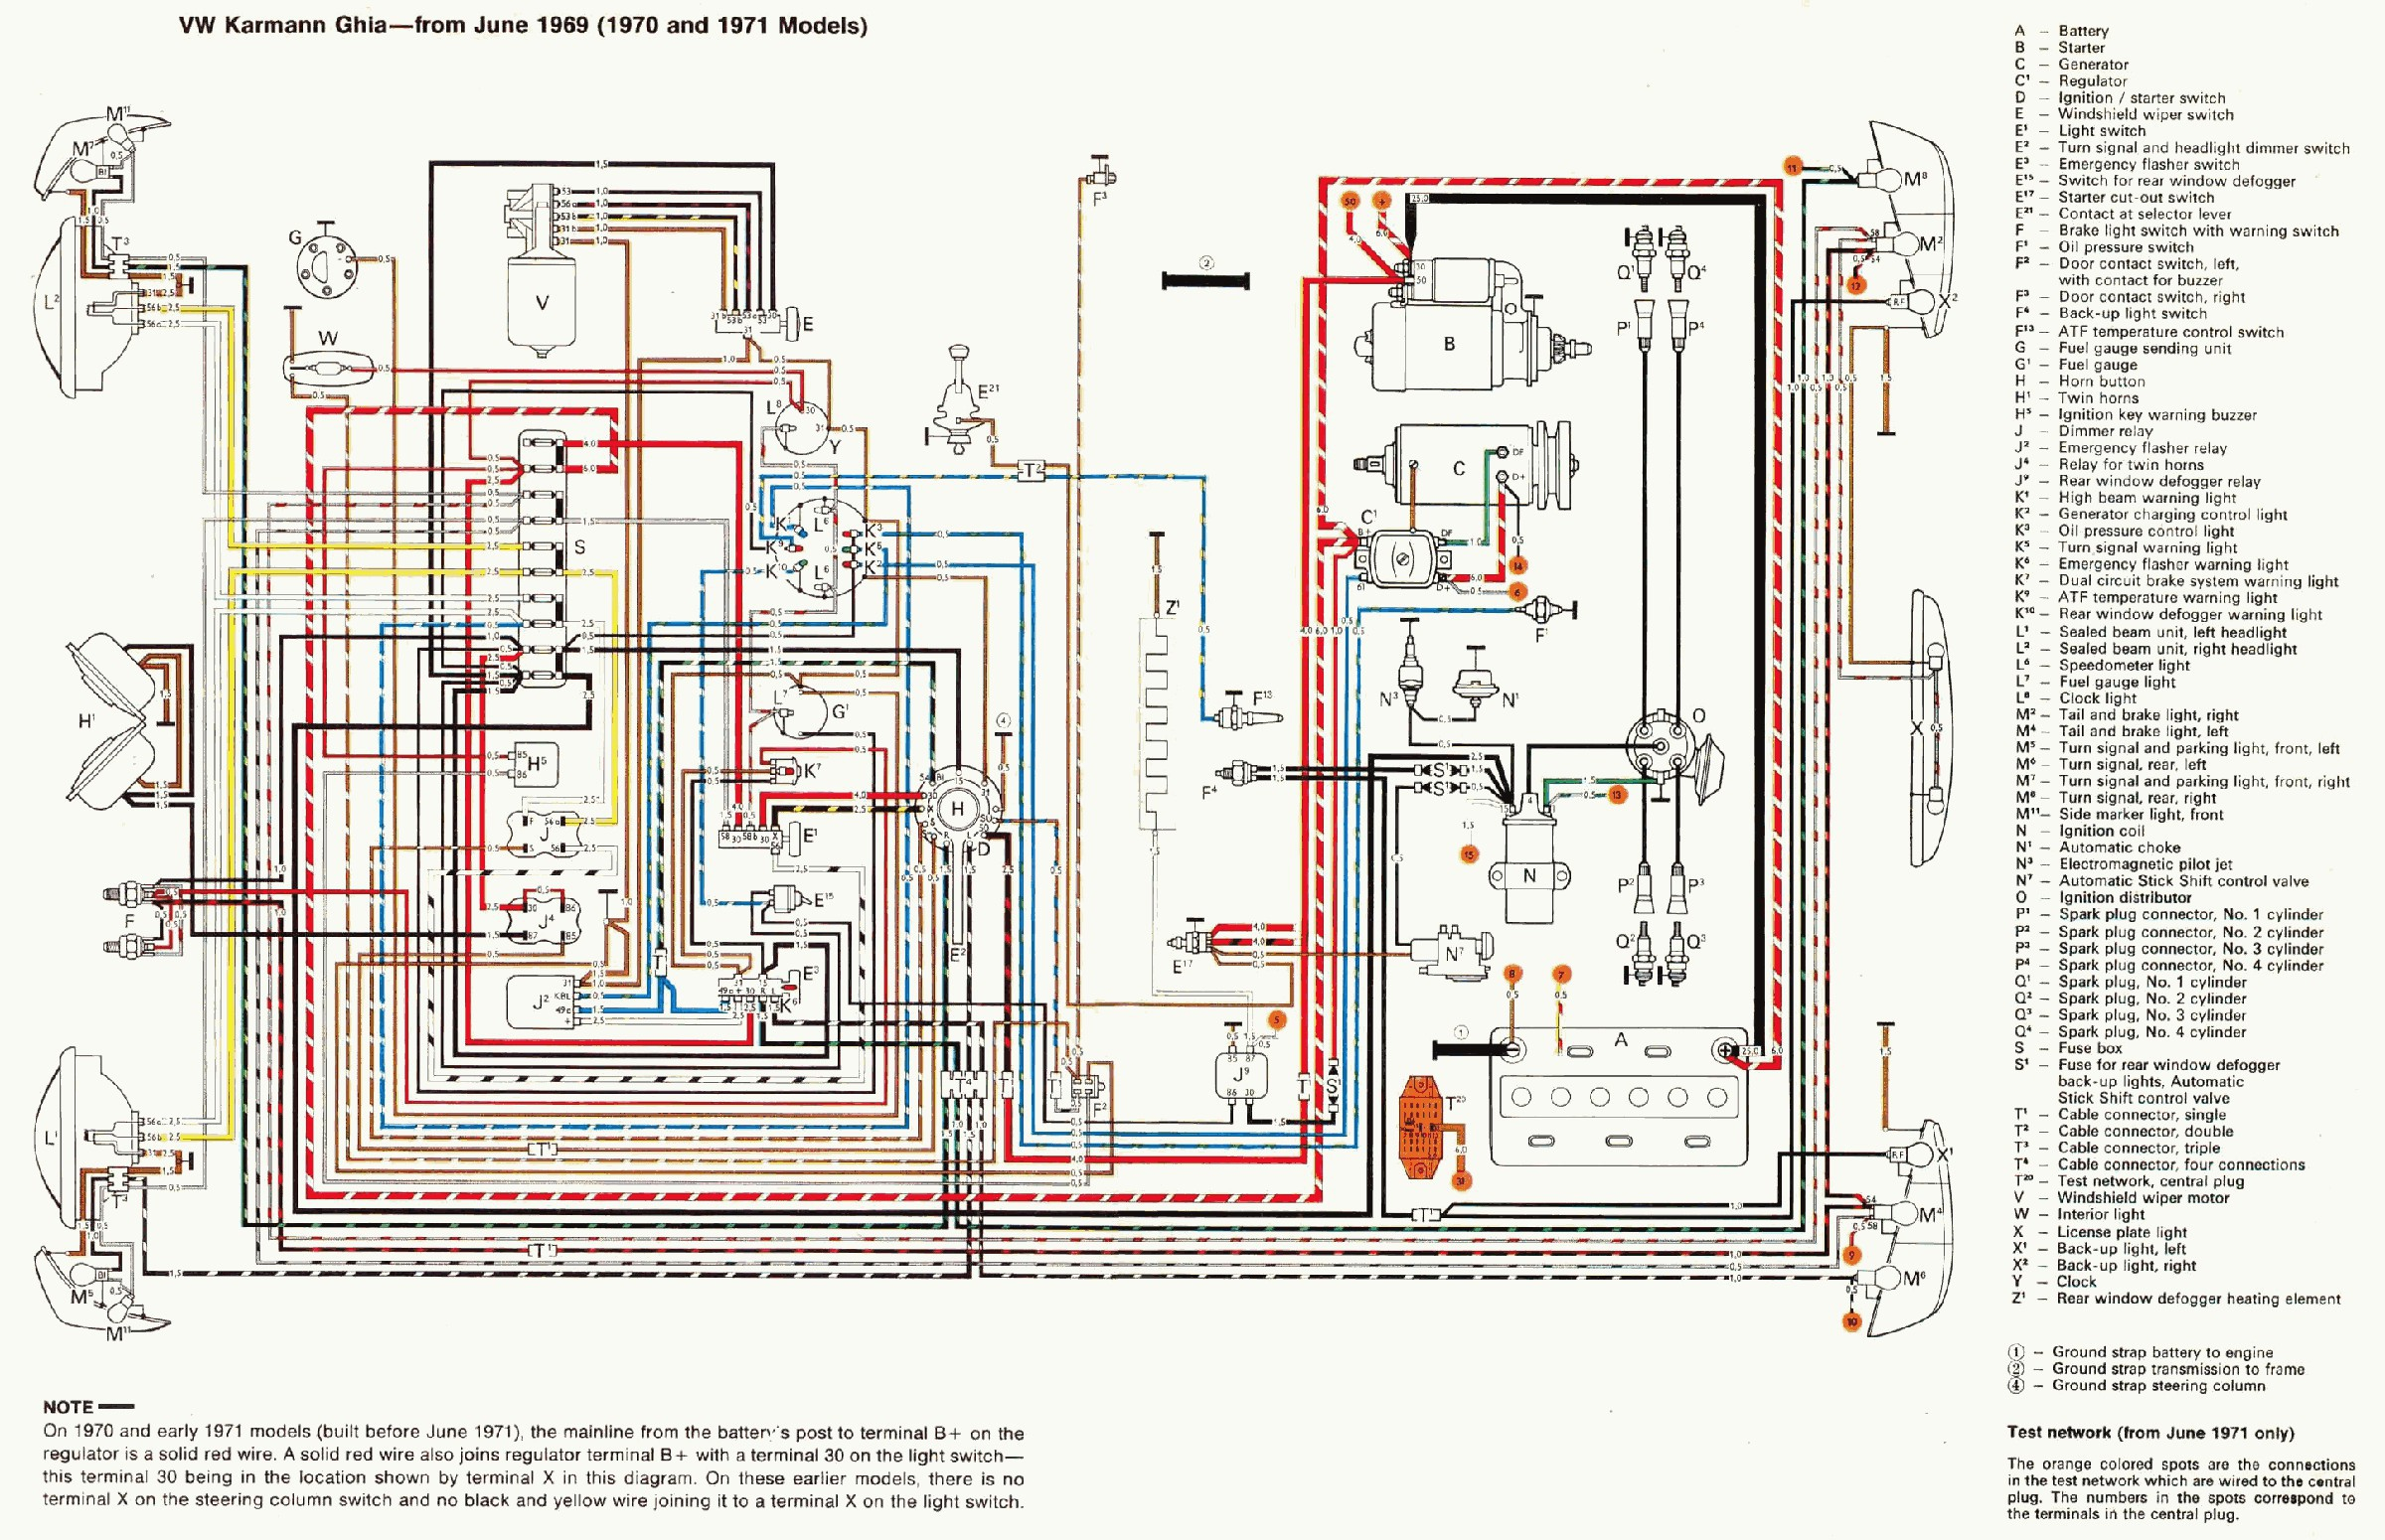 Phenomenal Bluebird Bus Engine Diagram Basic Electronics Wiring Diagram Zipur Mohammedshrine Wiring Diagrams Zipurmohammedshrineorg